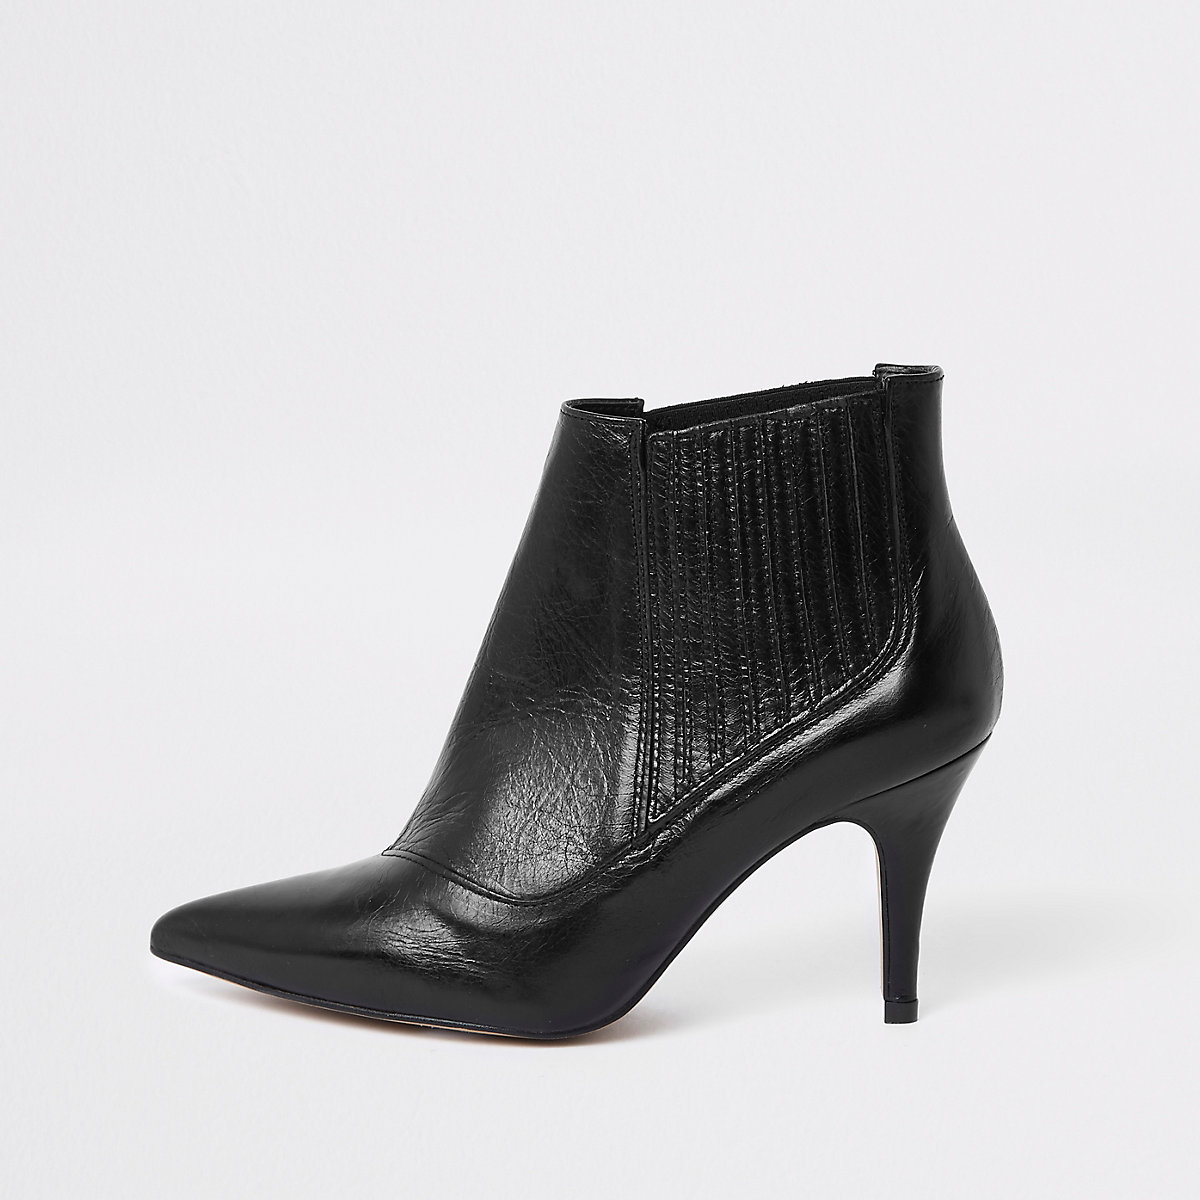 Black leather pointed toe ankle boots